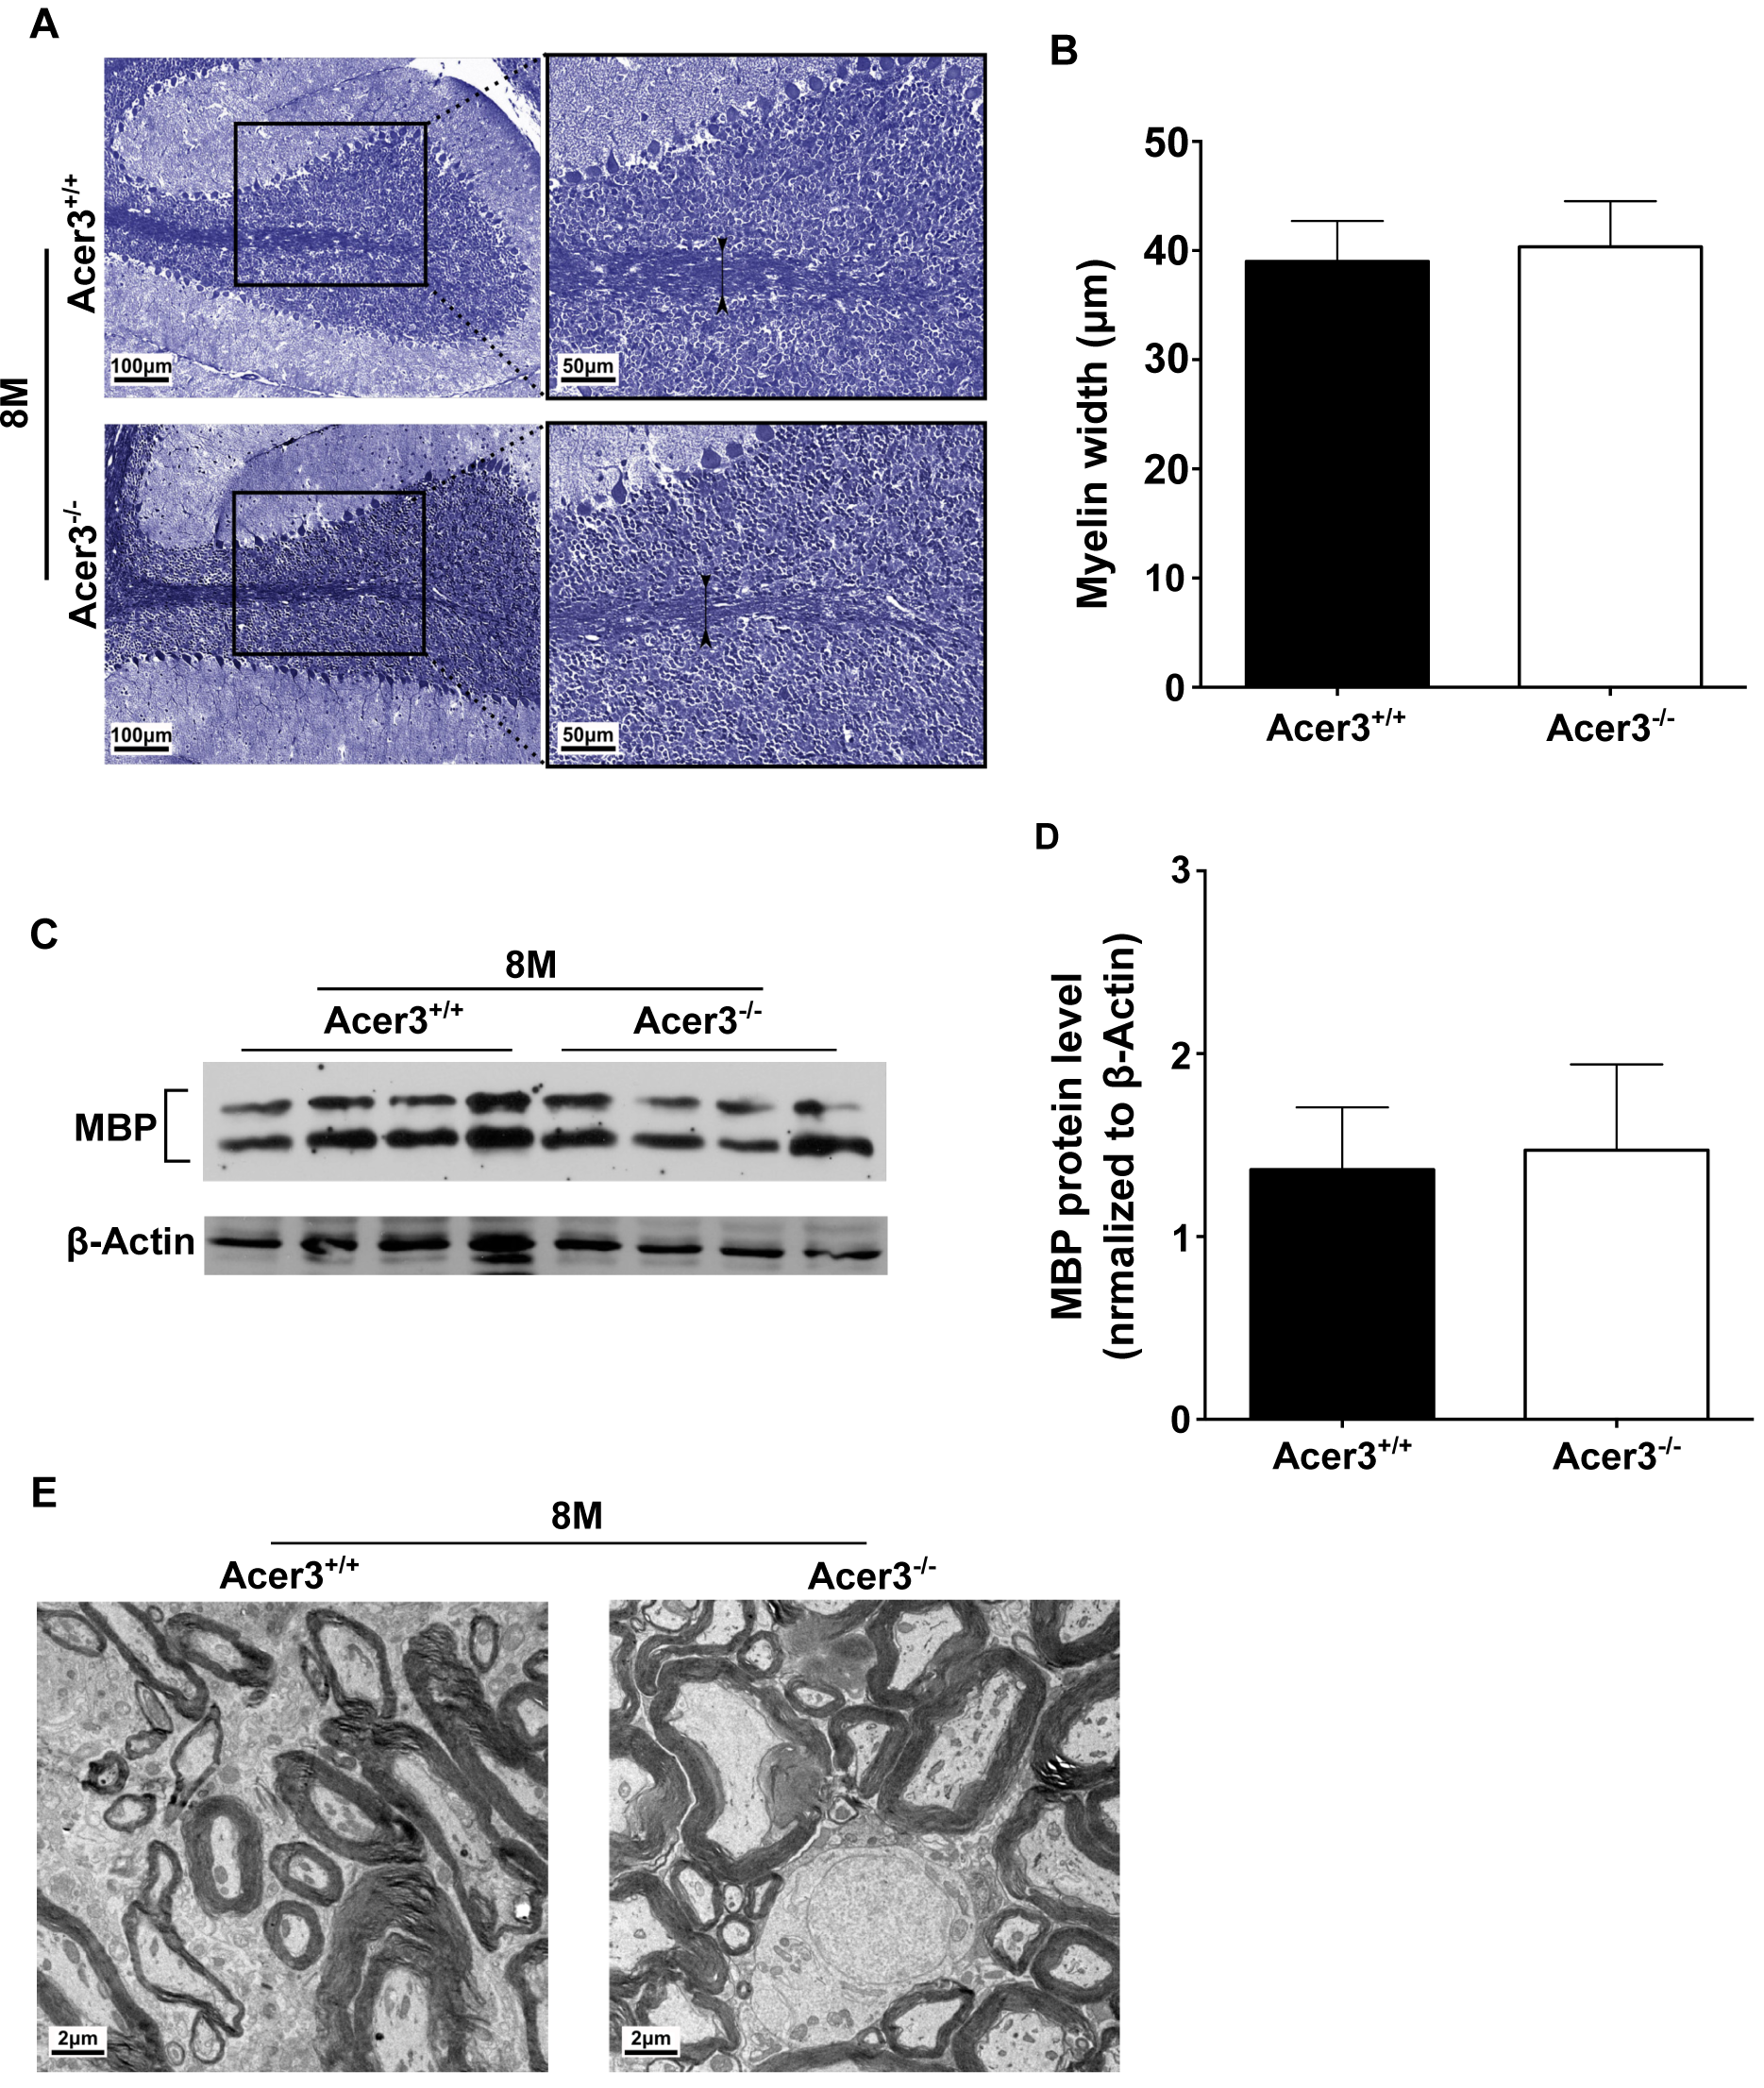 Acer3 knockout does not affect myelination.